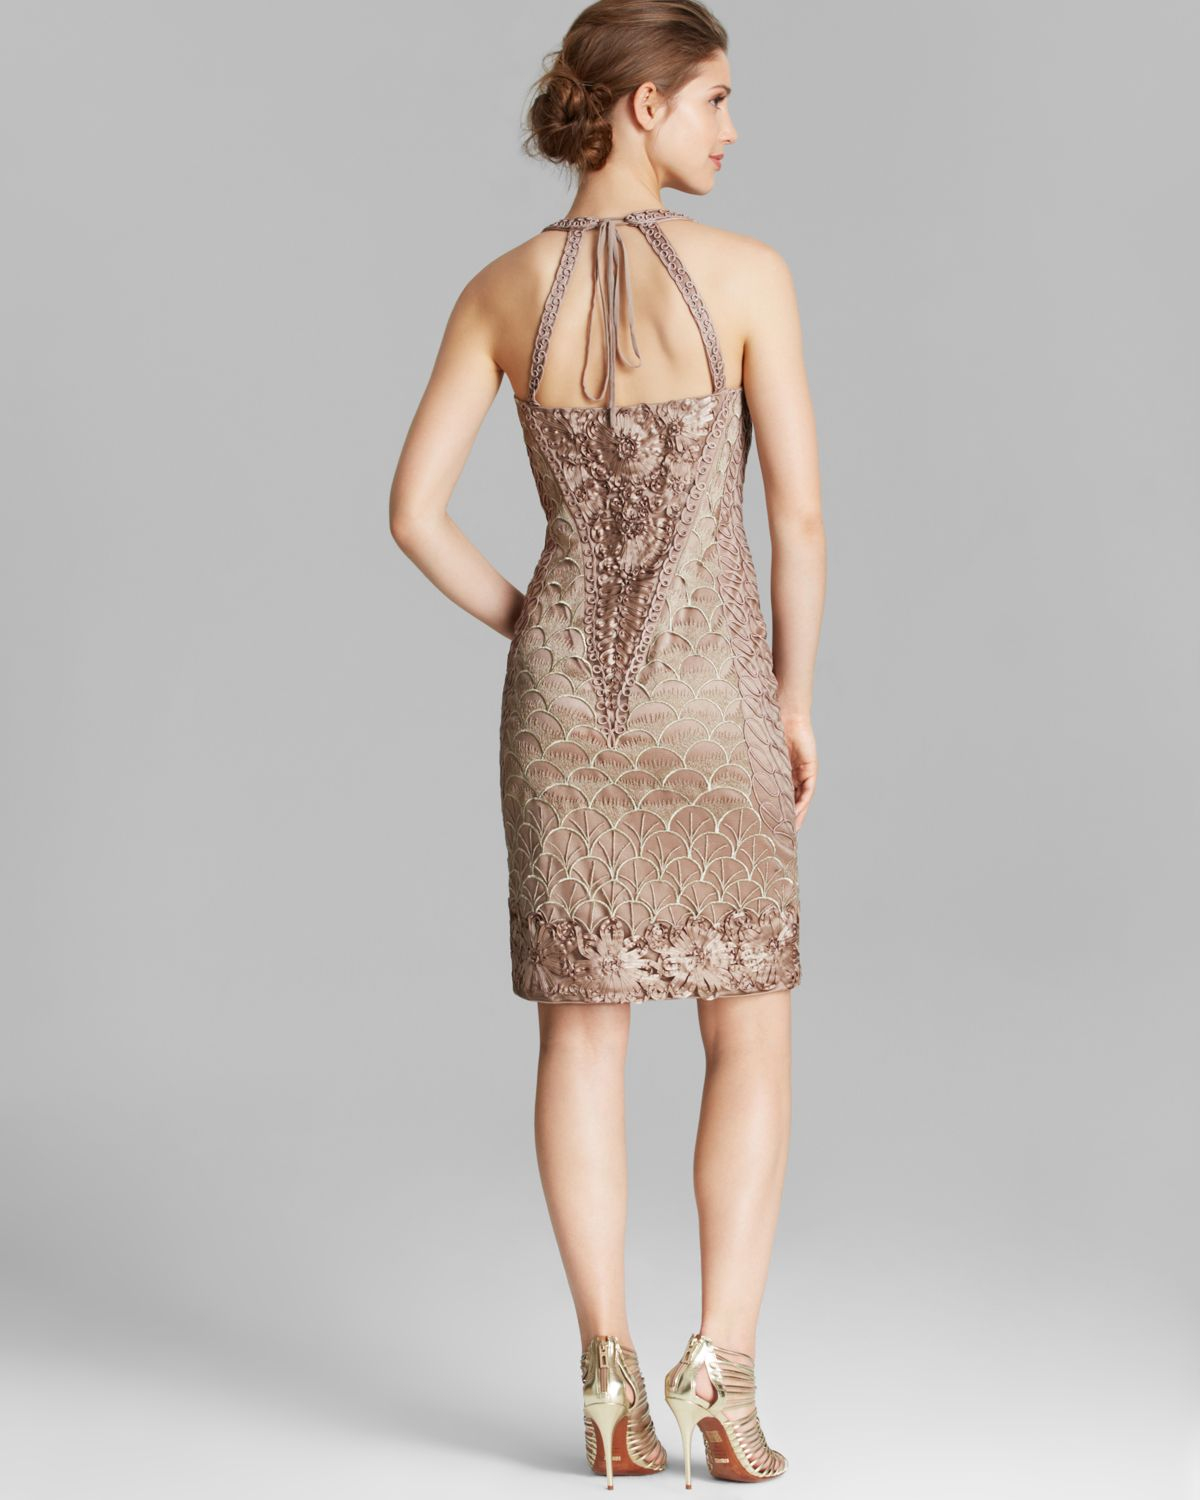 Sue wong Dress - Sleeveless V Neck Embroidered Open Back Sheath in ...